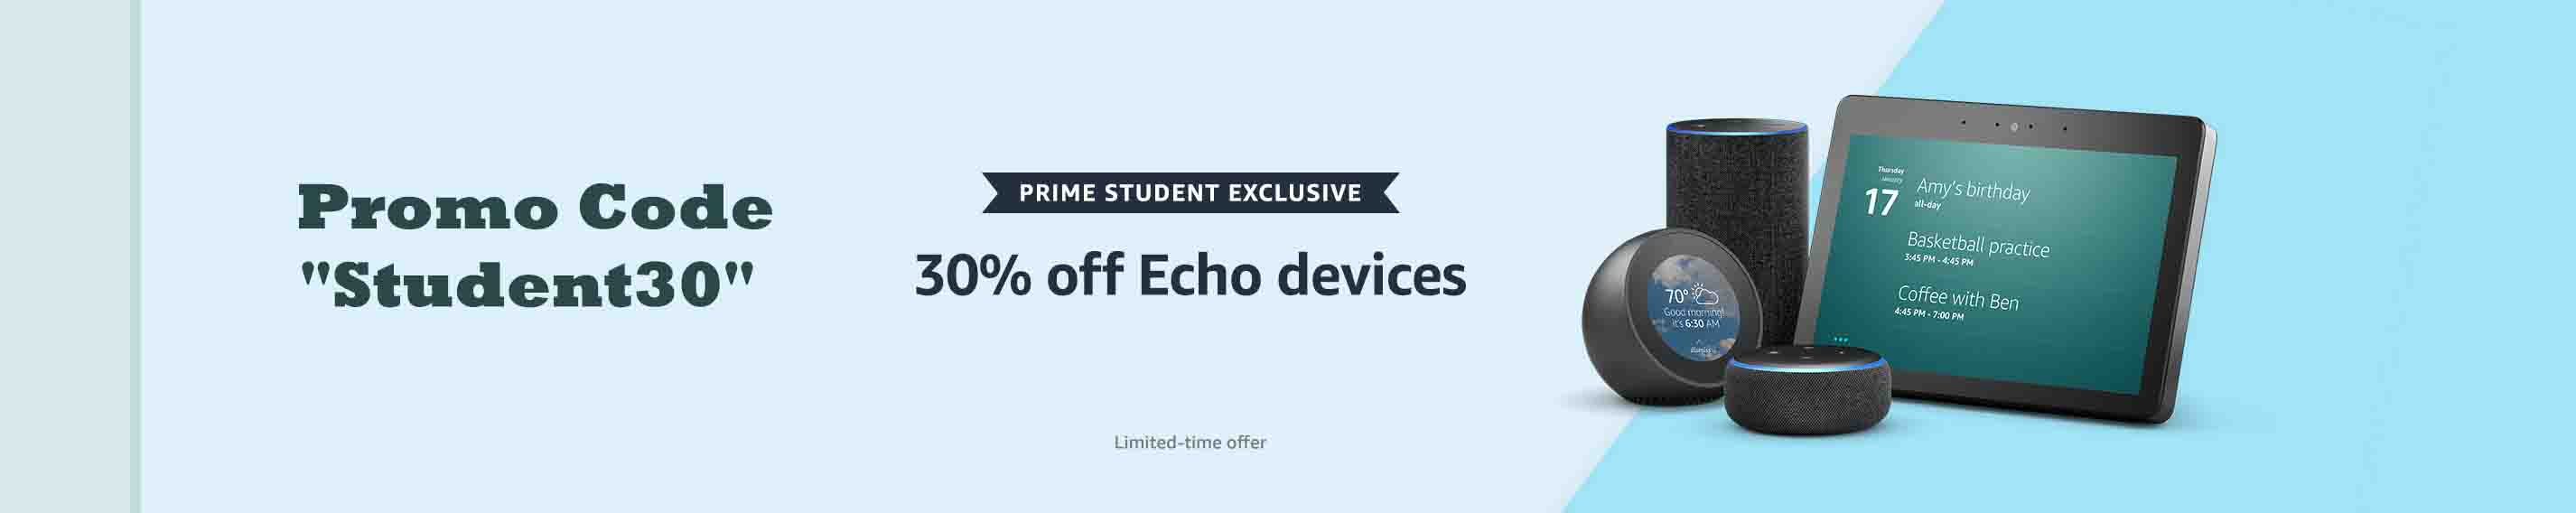 promo code for Amazon Echo devices